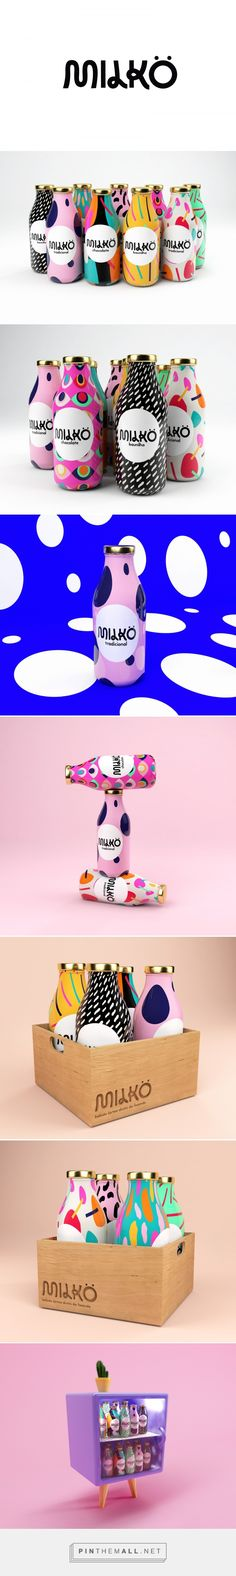 Milkö Milk Packaging by Giovani Flores Fivestar Branding Agency – Design and Branding Agency & Curated Inspiration Gallery Milk Packaging, Food Packaging Design, Bottle Packaging, Pretty Packaging, Packaging Design Inspiration, Brand Packaging, Graphic Design Inspiration, Design Web, Game Design